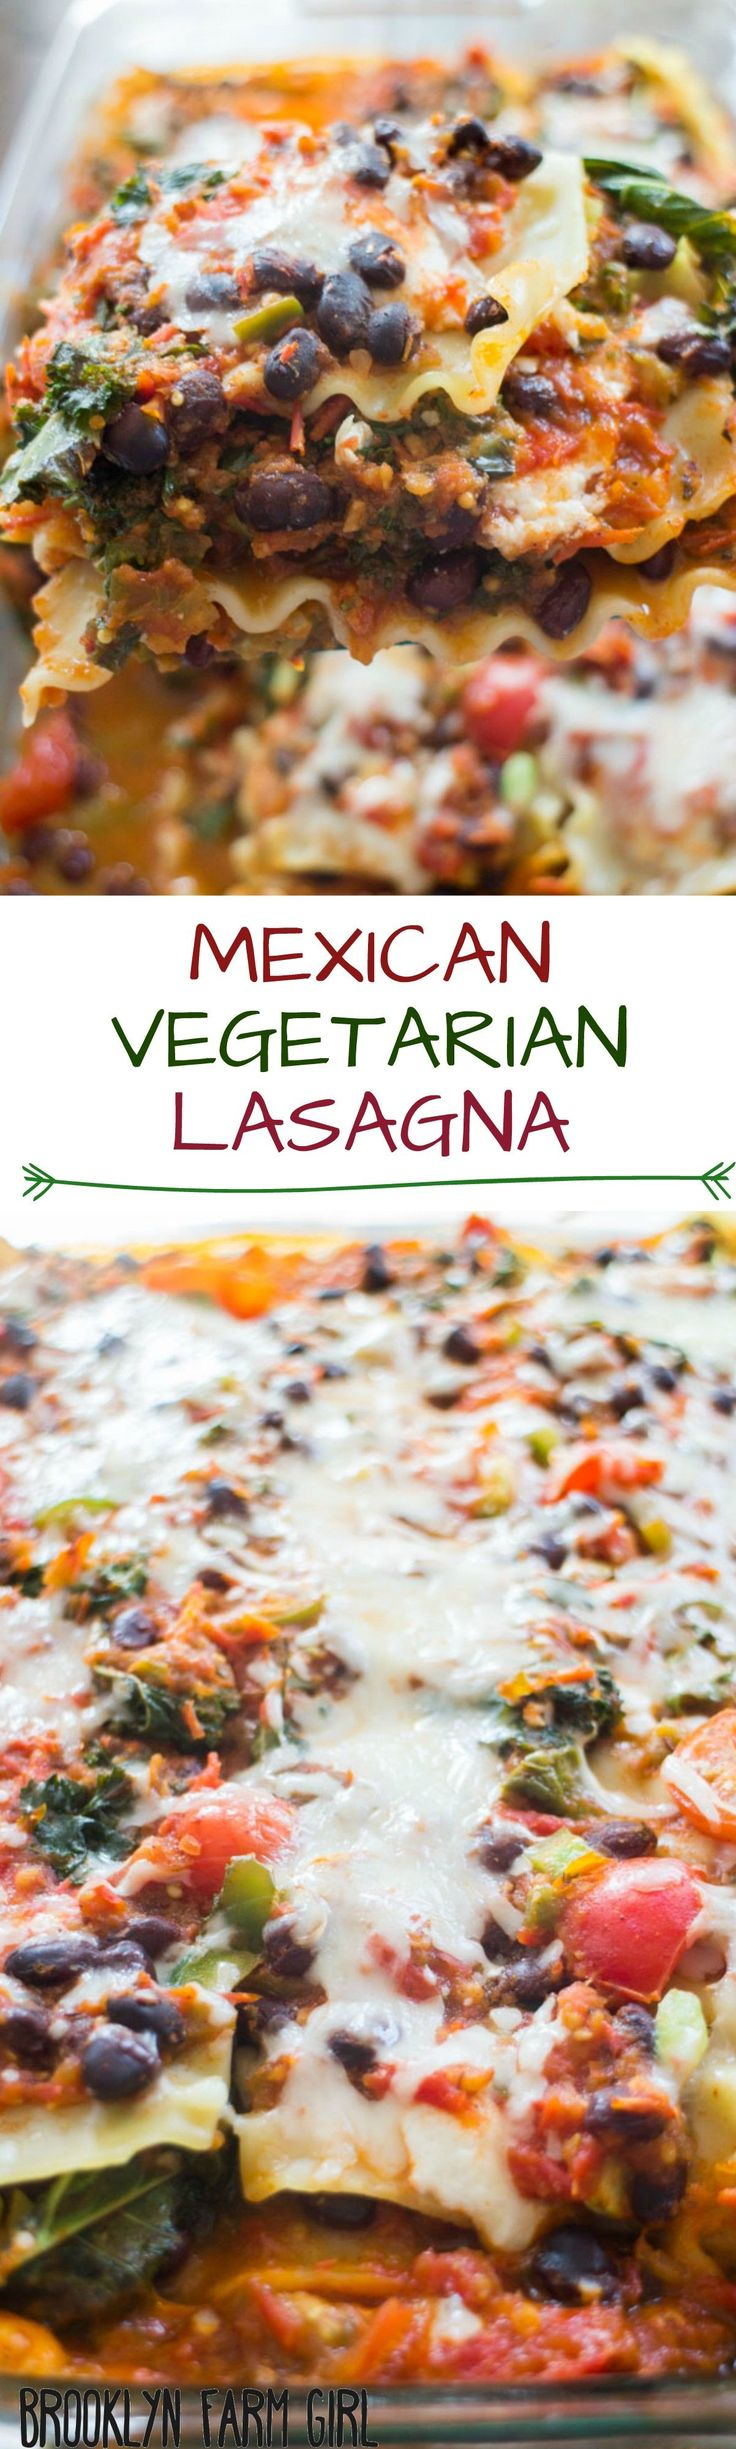 Mexican Vegetarian Lasagna recipe that is filled with veggies, ricotta ...